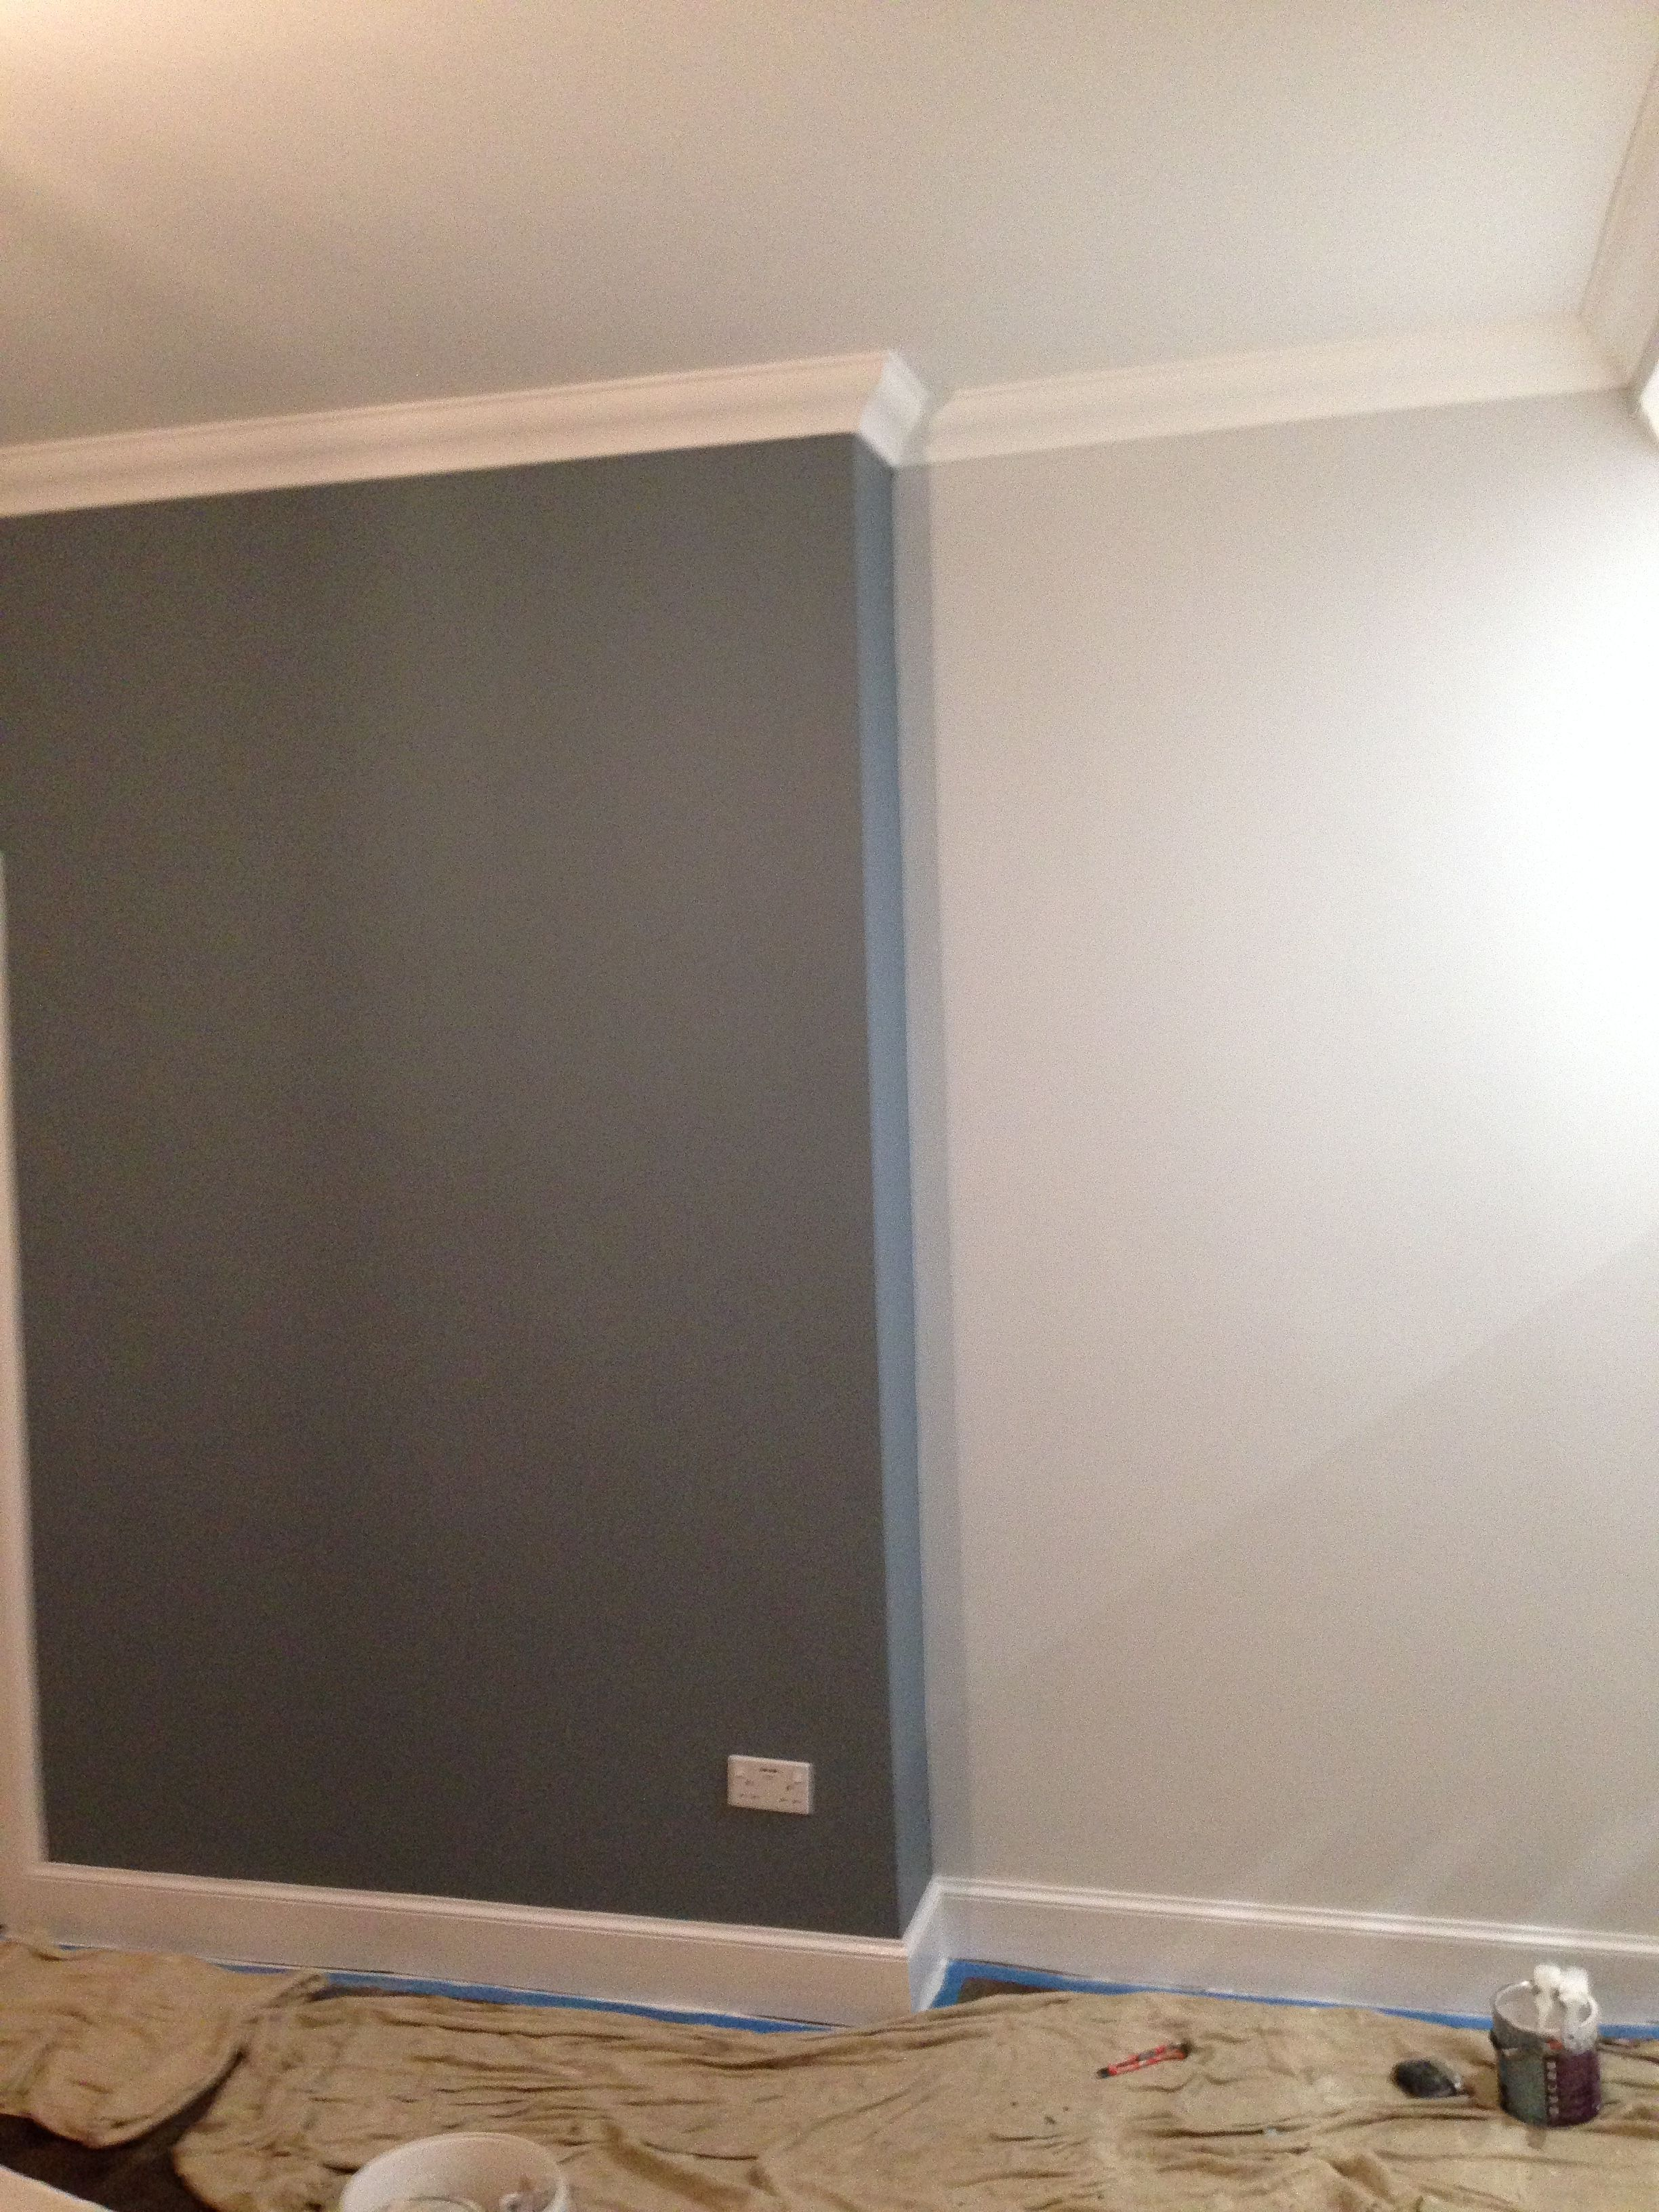 Stunning Dulux Denim Drift For The Hallway Changes Colour In The Light And Glossed White Skirtings Denim Drift Denim Drift Dulux Paint Framed Bathroom Mirror